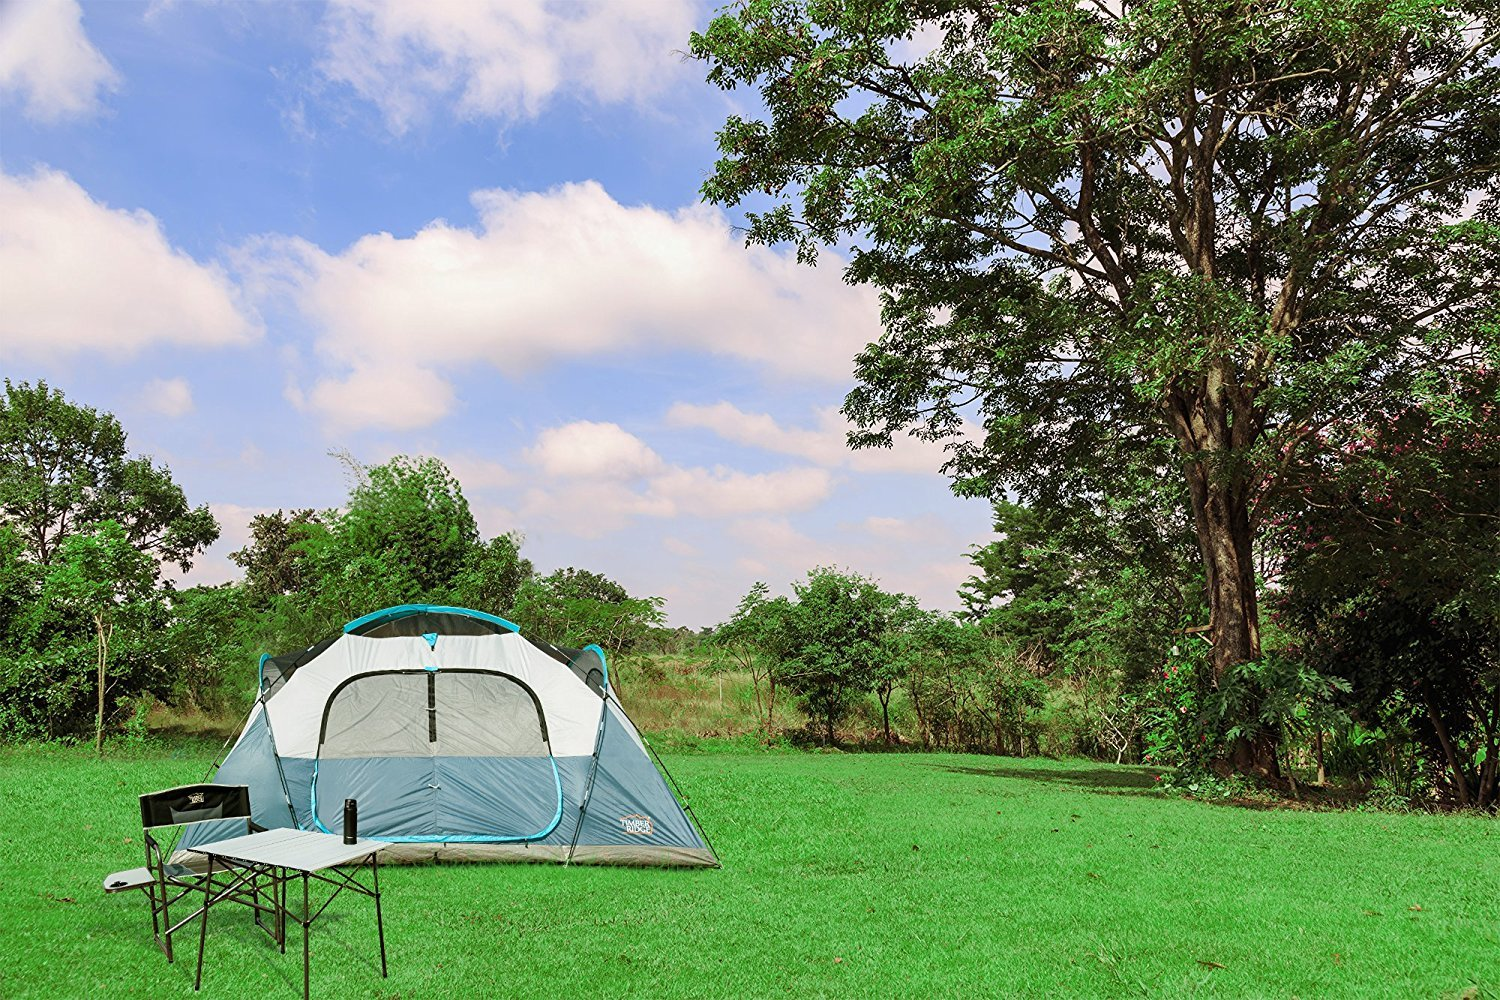 Timber Ridge Large Family Tent for Camping with Carry Bag, 2 Rooms by Timber Ridge (Image #7)